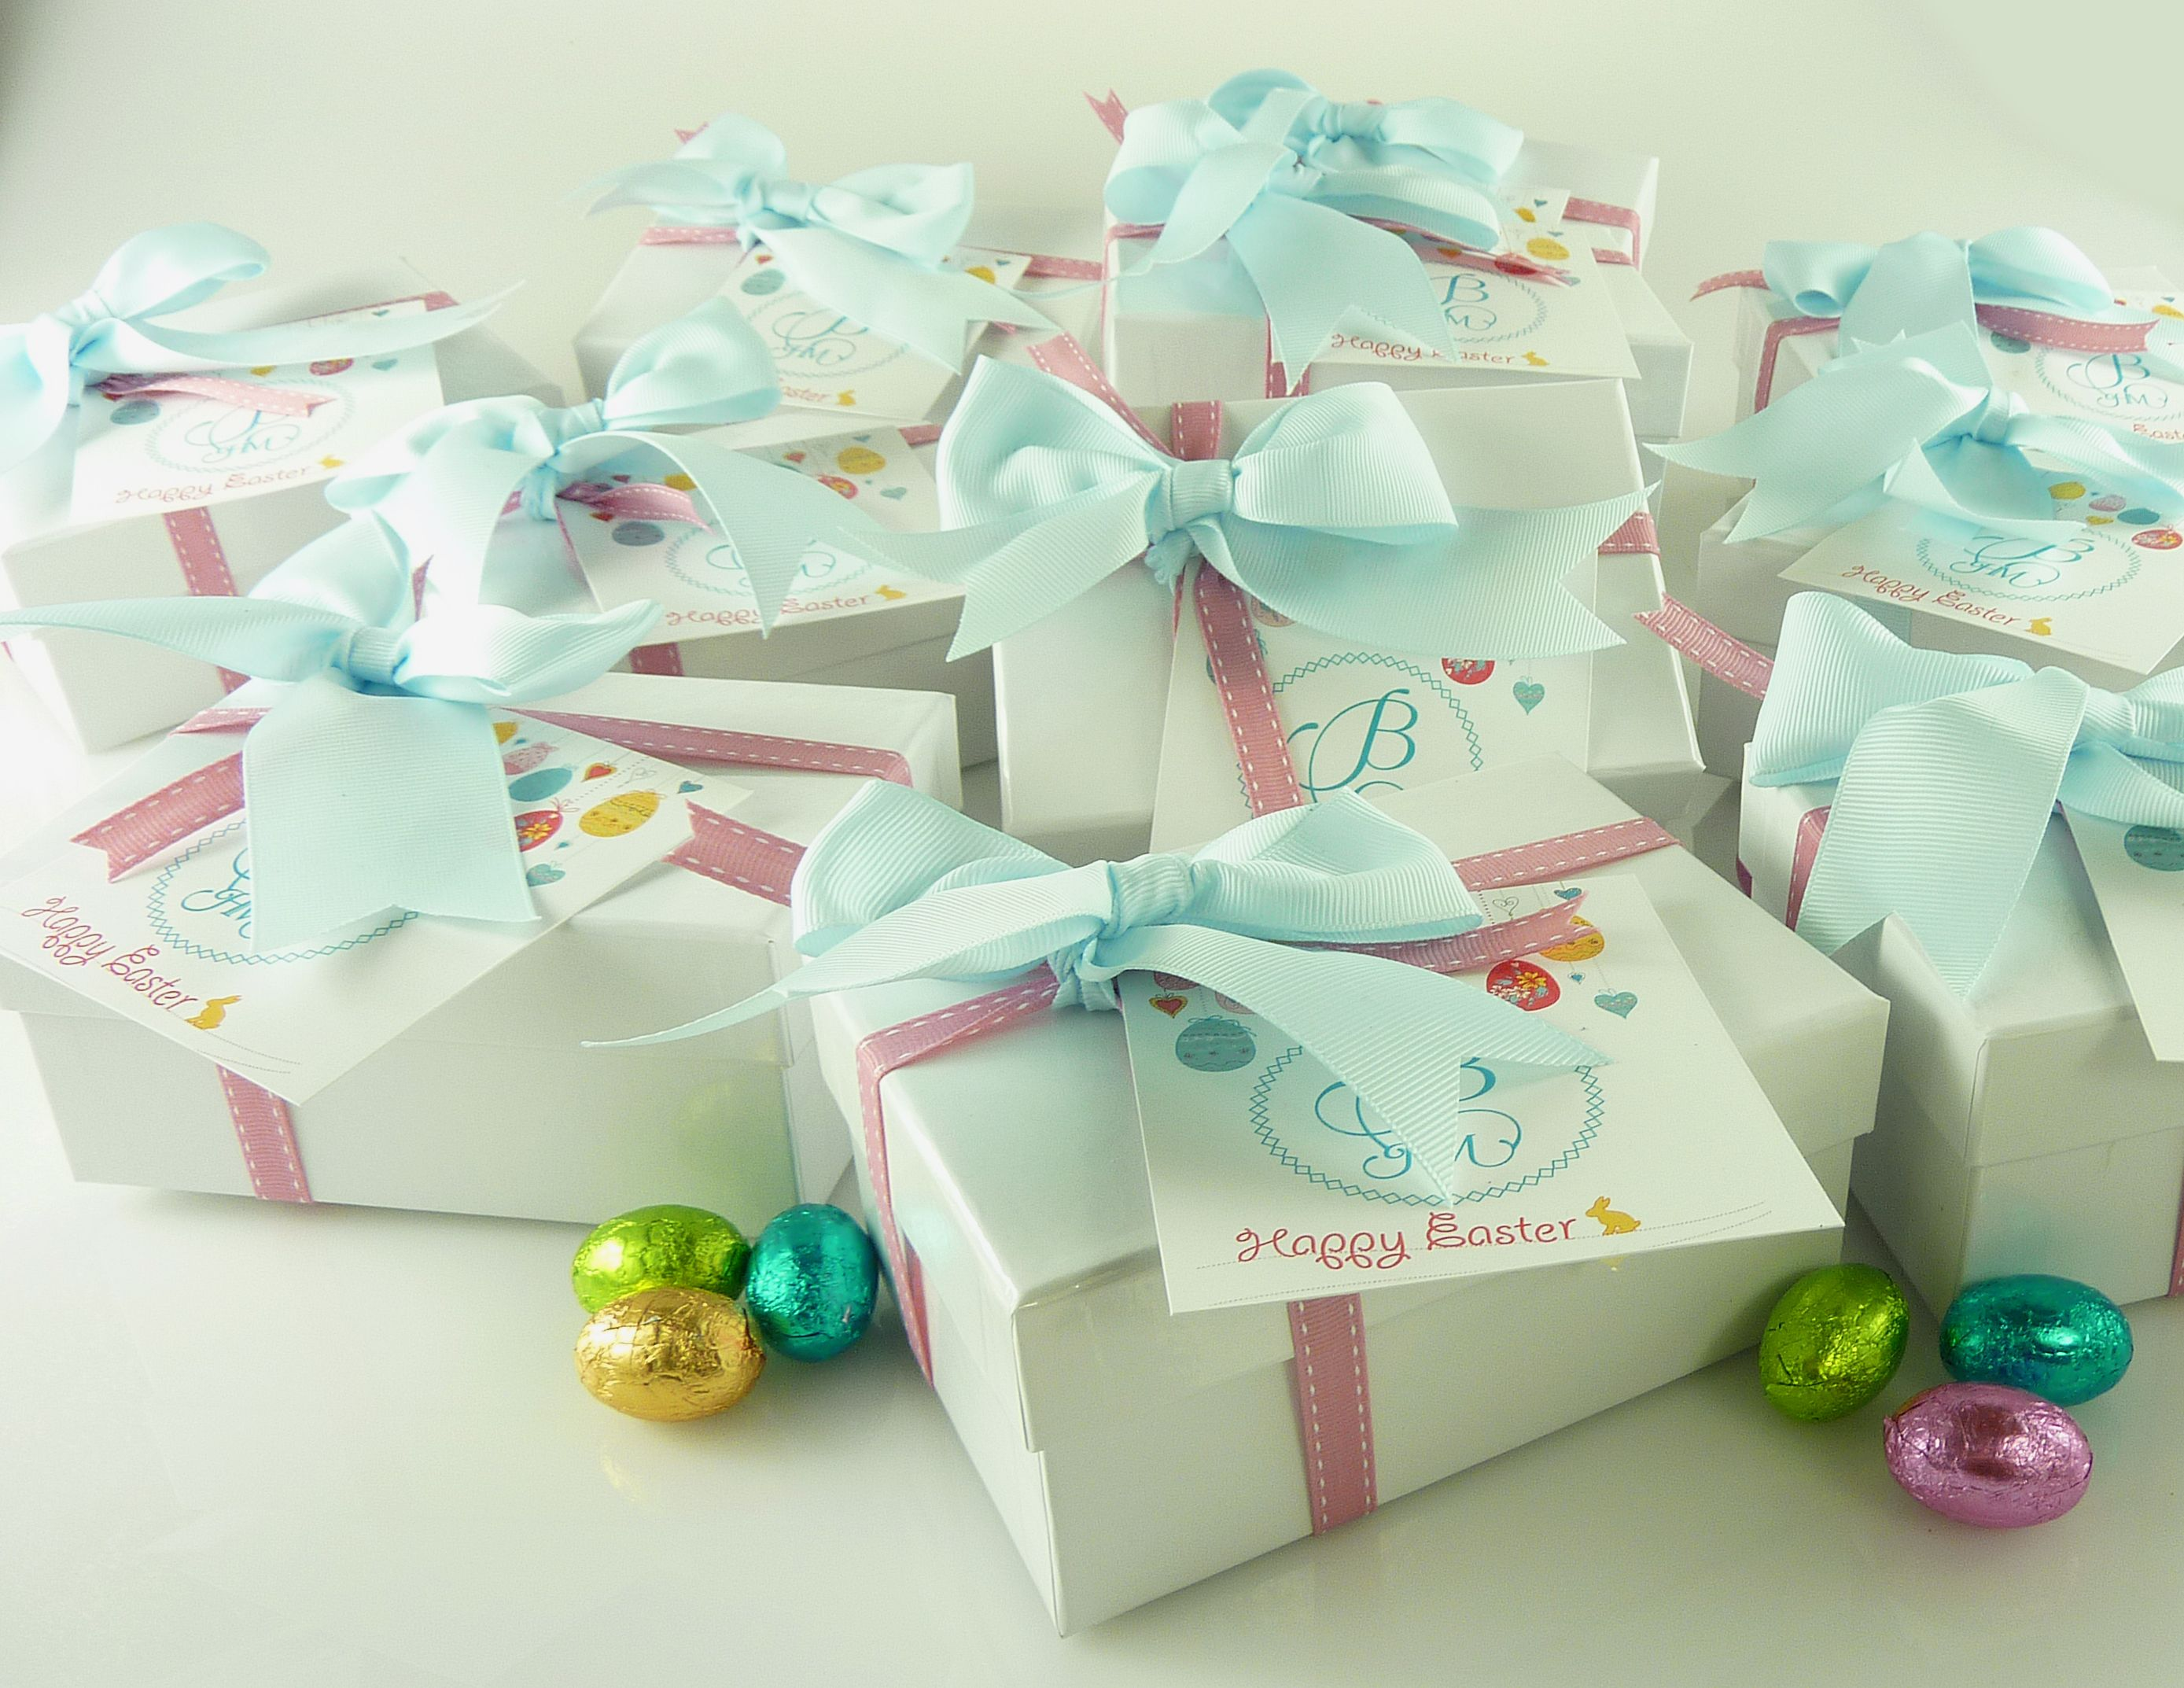 Easter gifts for bliss home management corporate gift wrap easter gifts for bliss home management negle Gallery